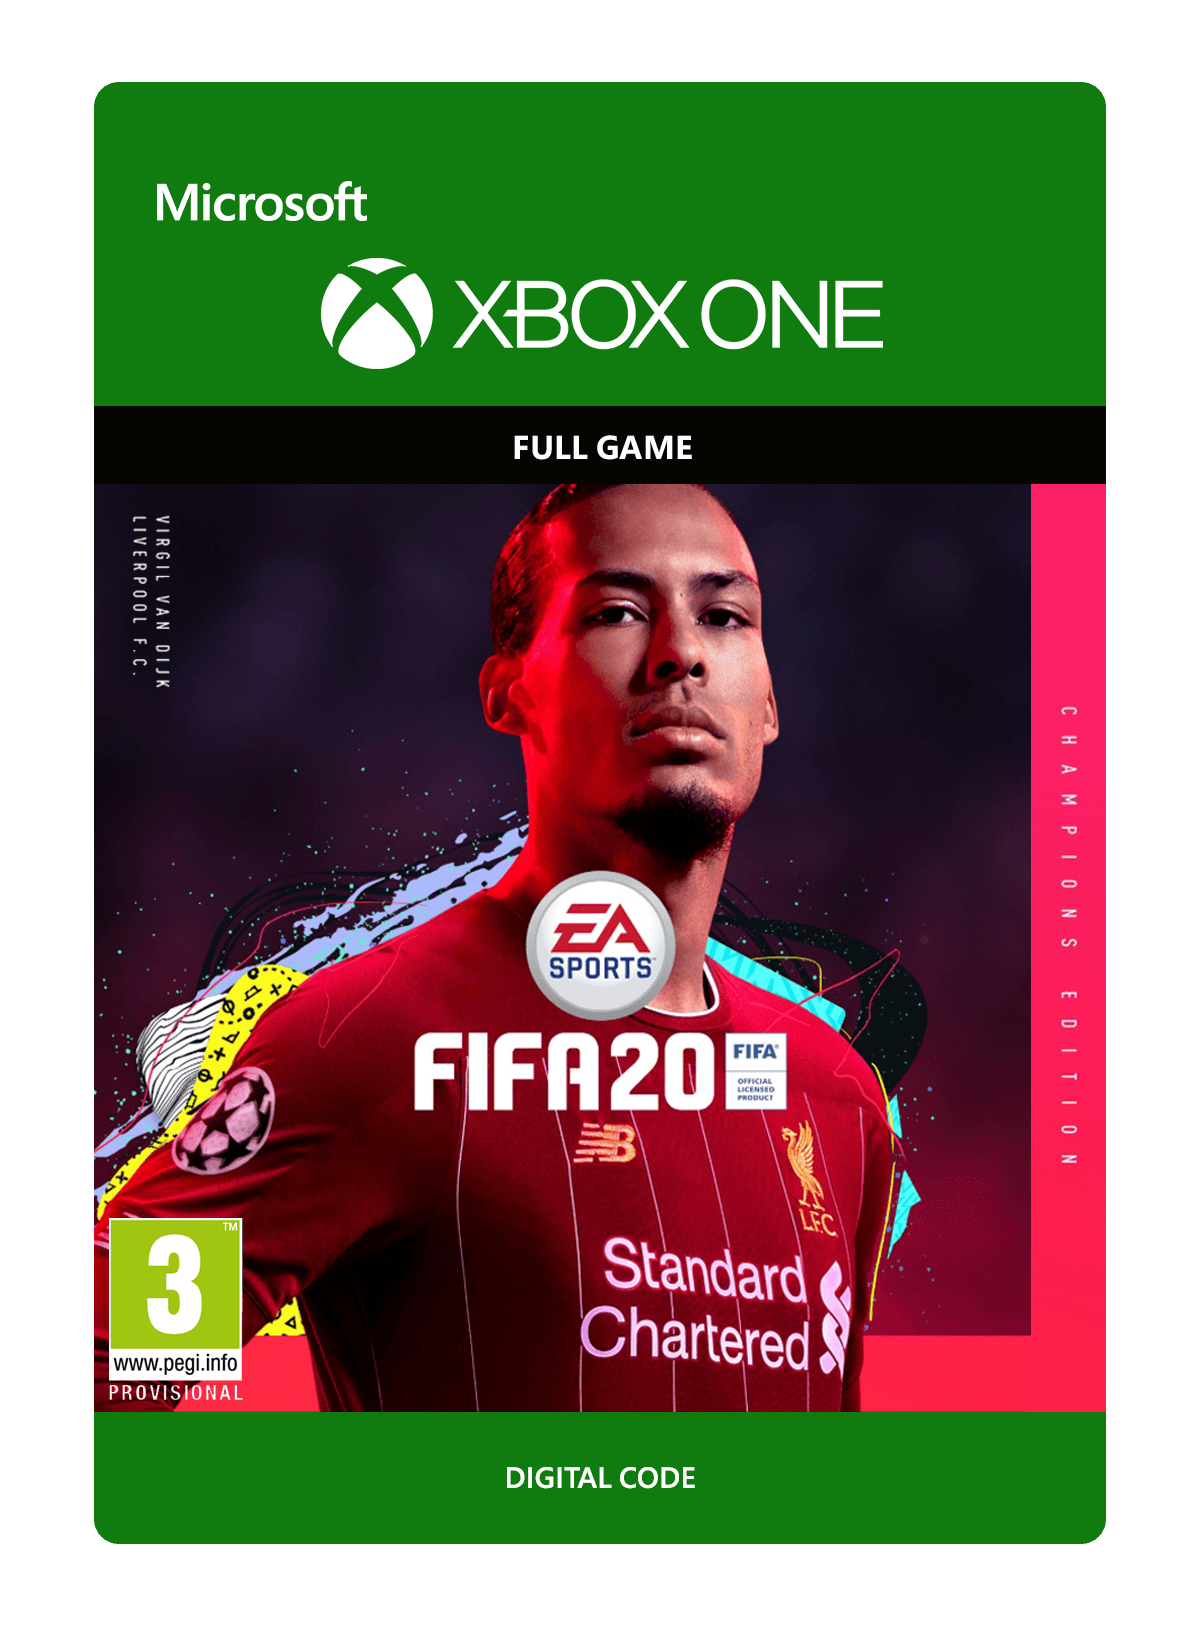 EA SPORTS ™ FIFA 20 XBOX ONE  Key Digital Code